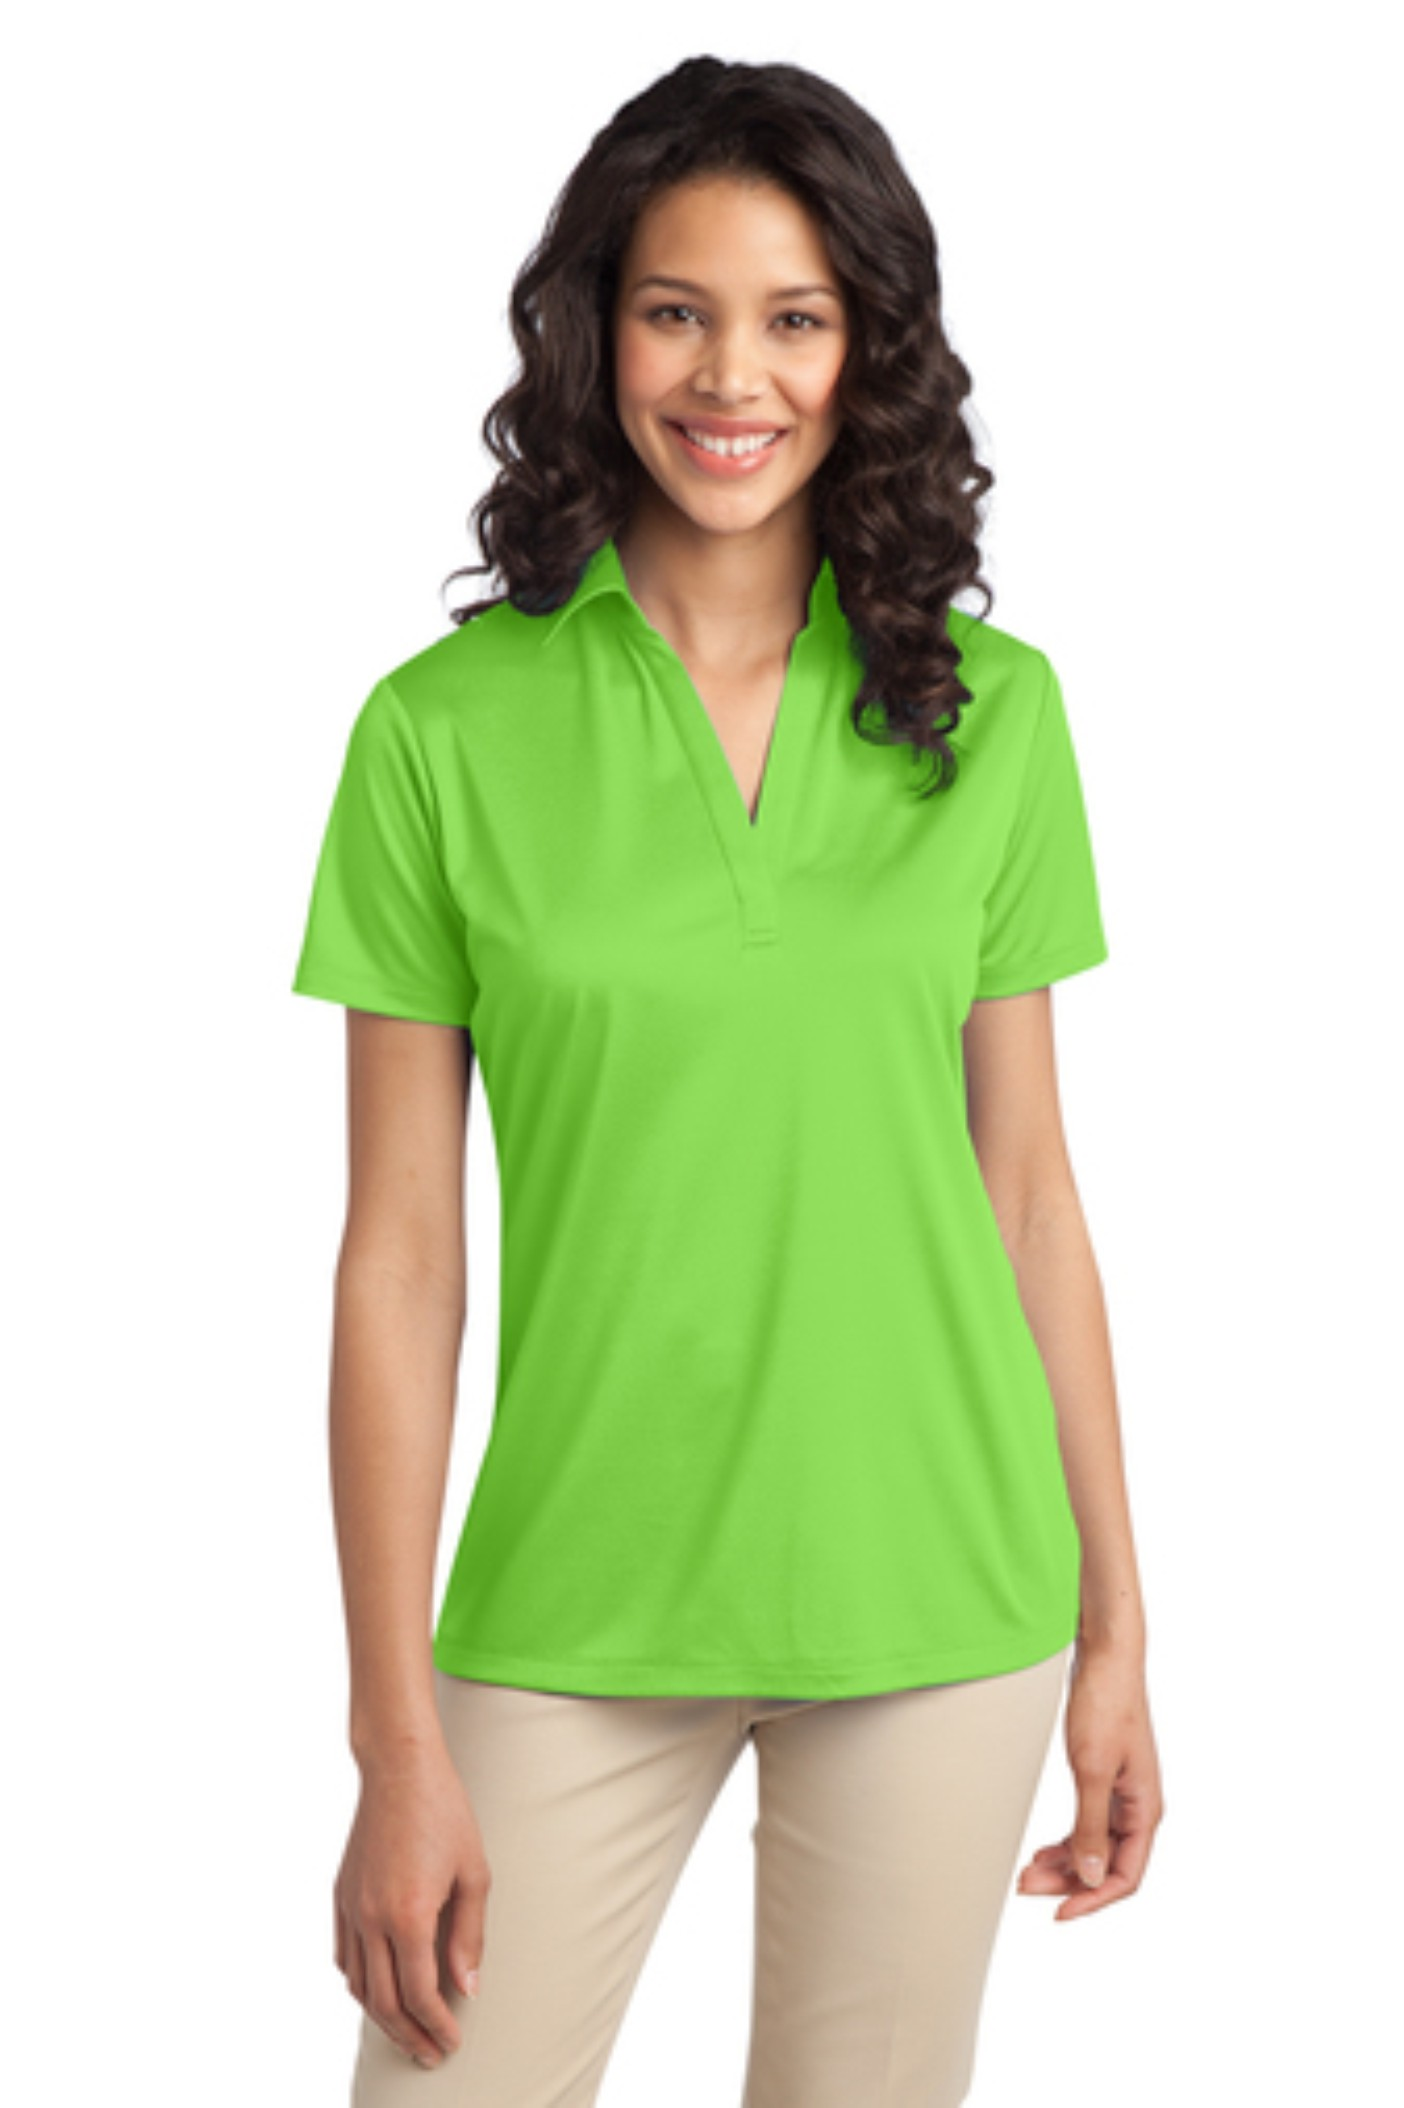 L540 Womens Port Authority Performance Polo.  $18.00.